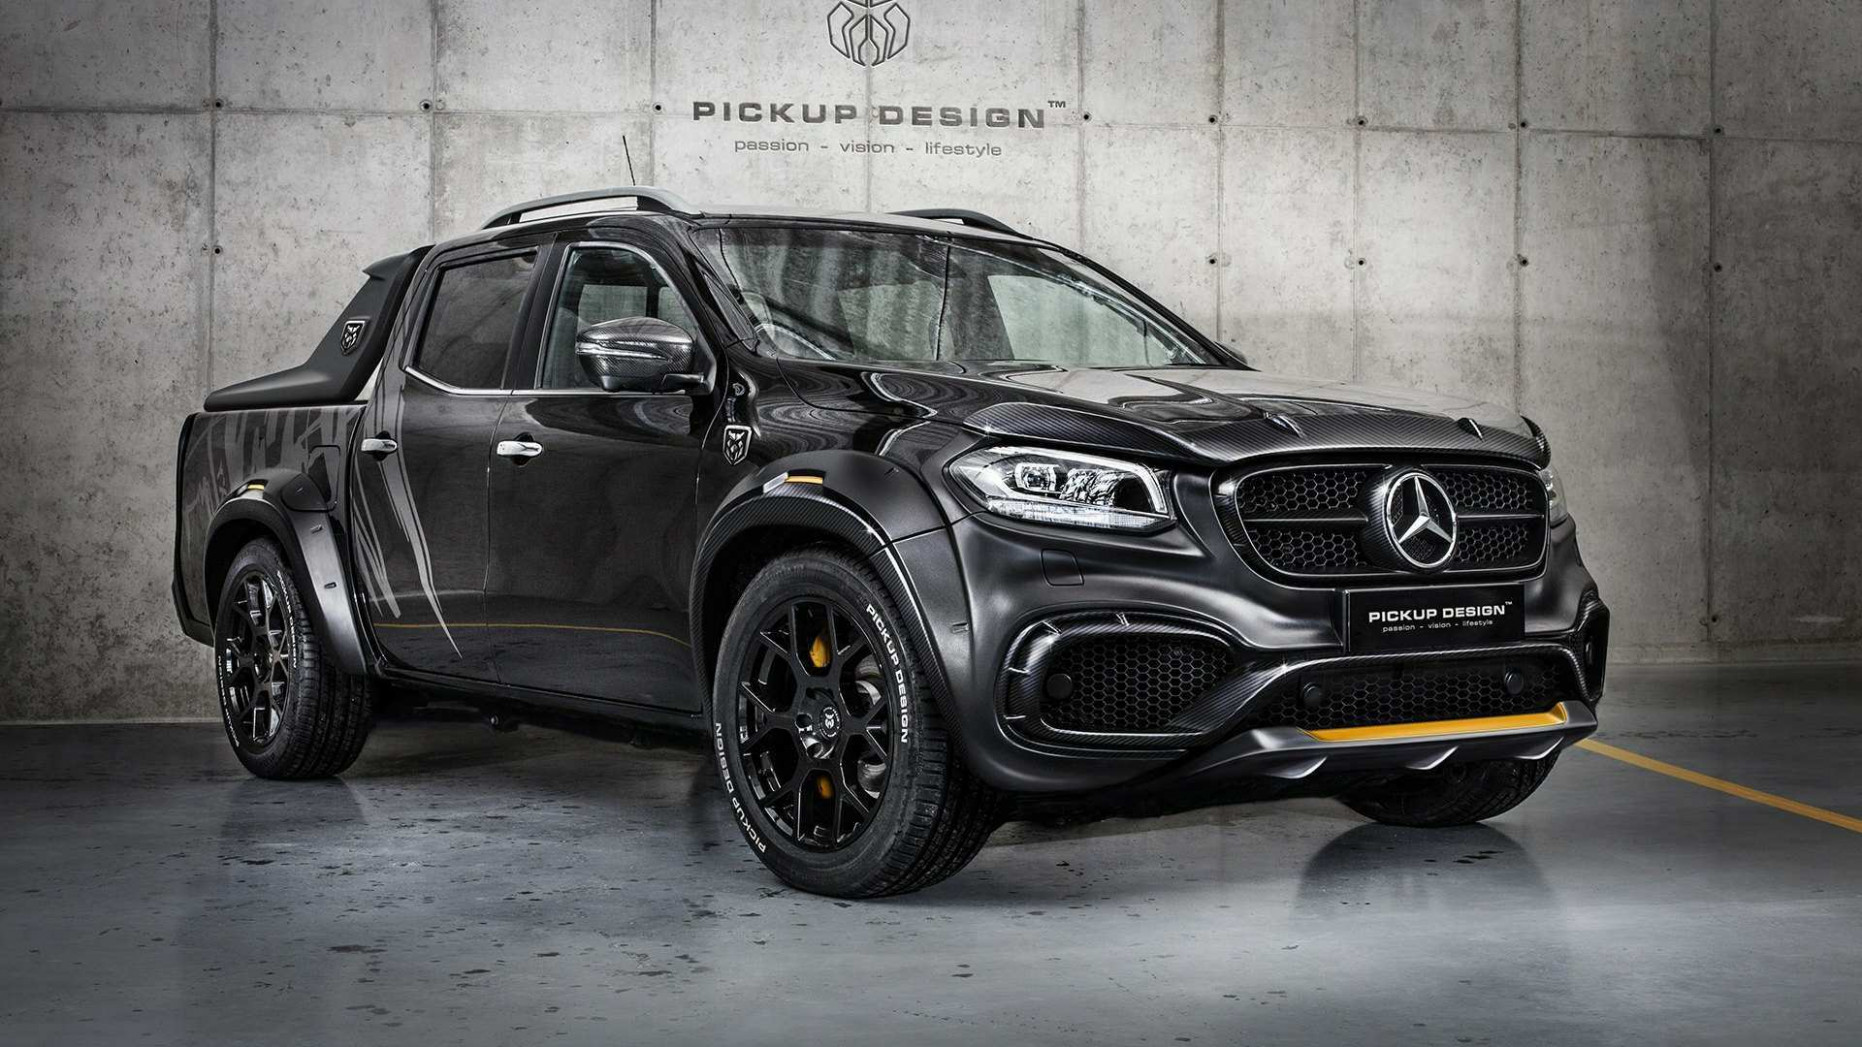 8 Mercedes Benz X Class - Car Review : Car Review - mercedes x class 2020 review